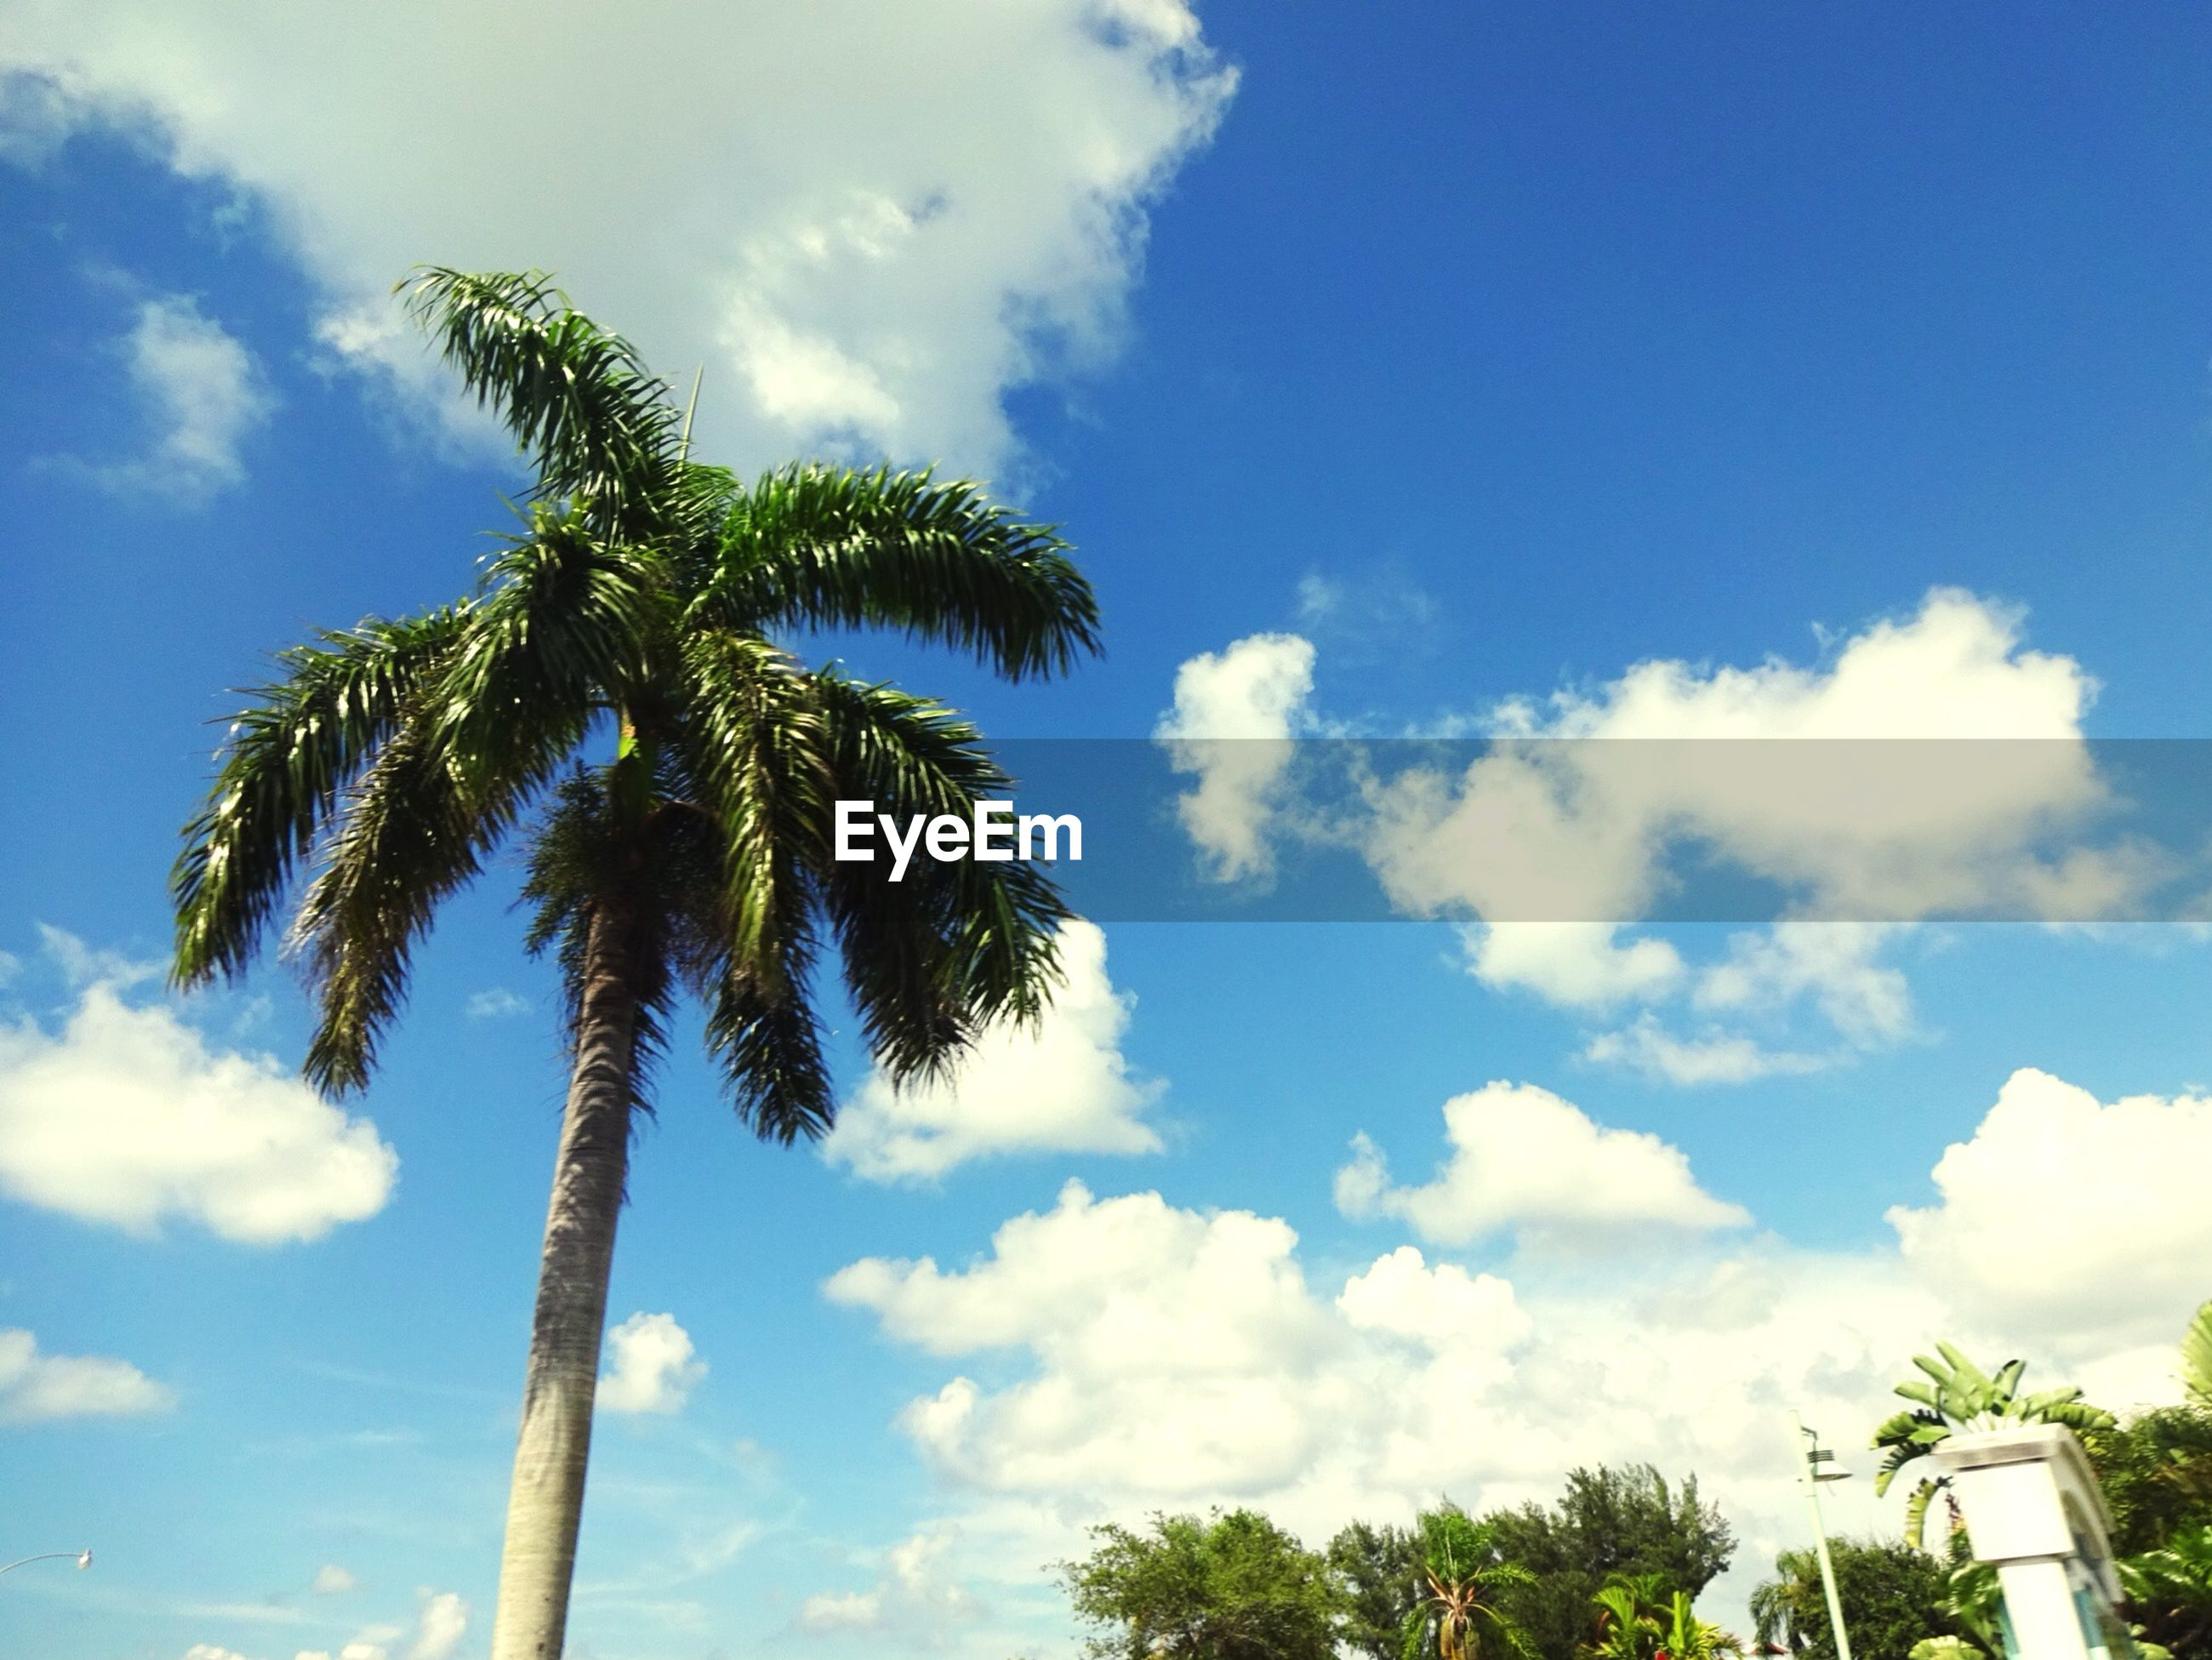 palm tree, low angle view, sky, tree, cloud - sky, blue, growth, cloud, nature, tranquility, beauty in nature, tree trunk, coconut palm tree, cloudy, scenics, day, tranquil scene, green color, outdoors, no people